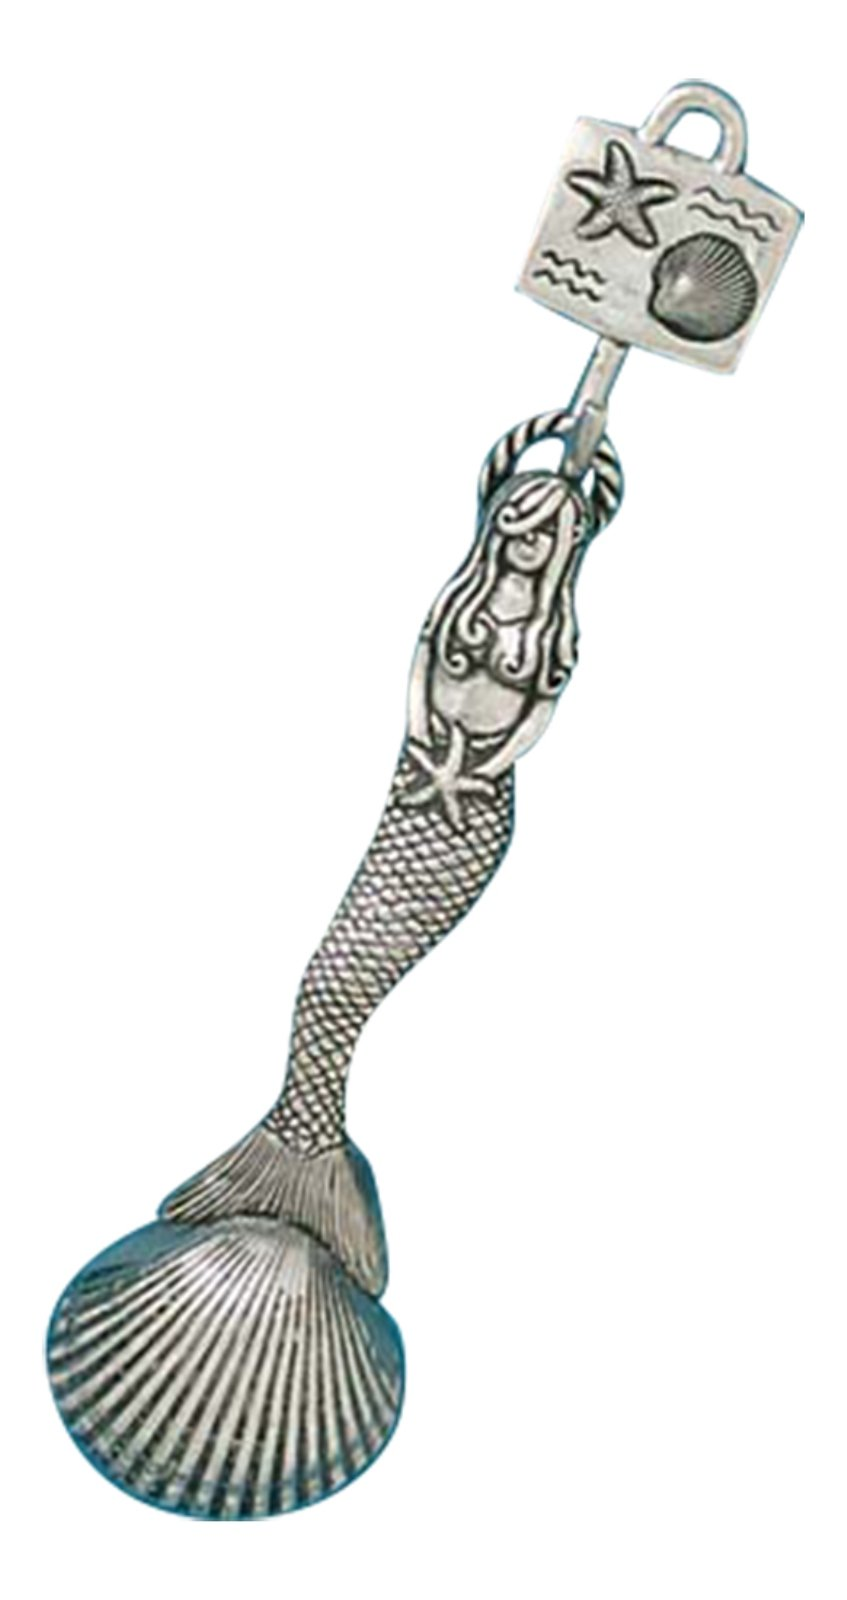 Basic Spirit Pewter Mermaid Coffee Measuring Scoop Kitchen Decor Collectible